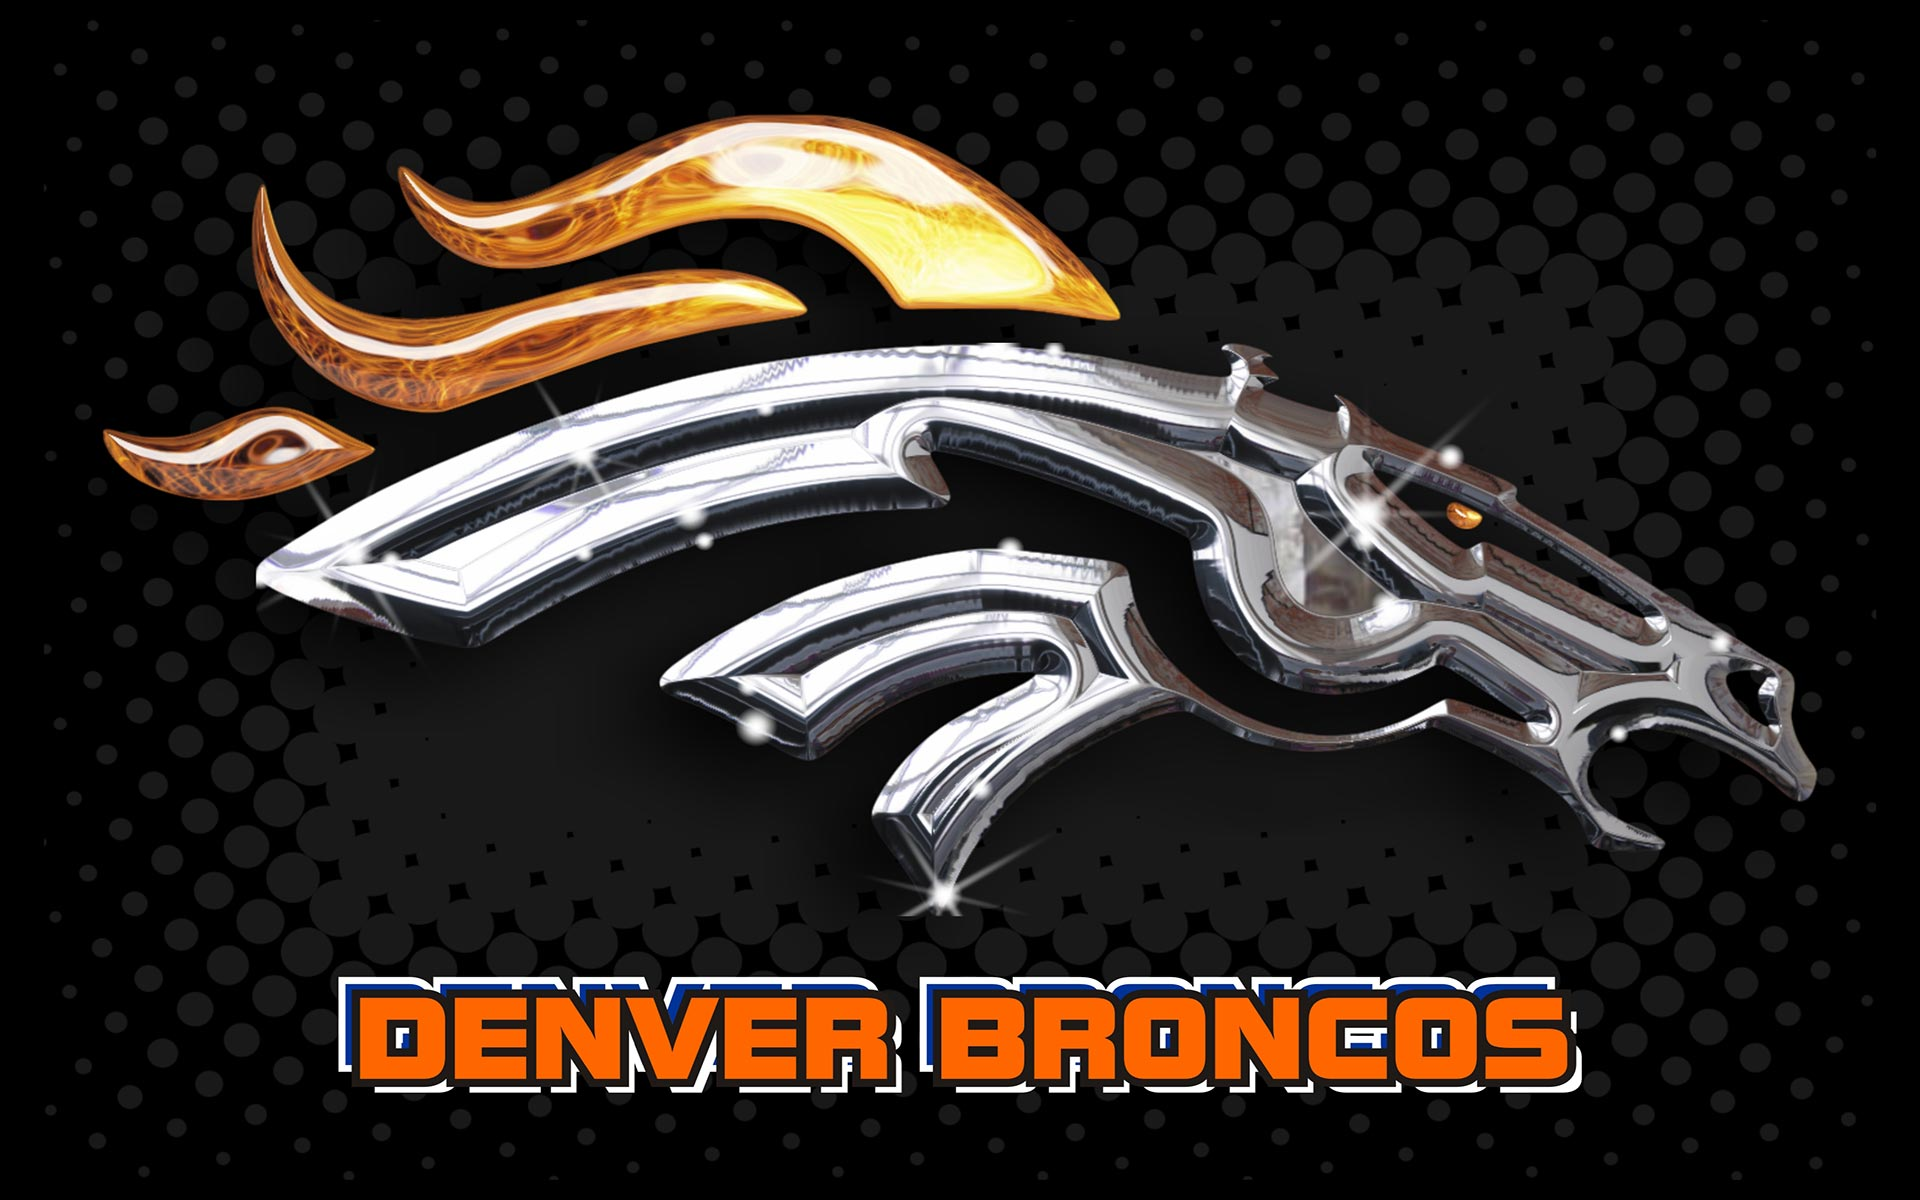 Broncos NFL denver Wallpapers 24